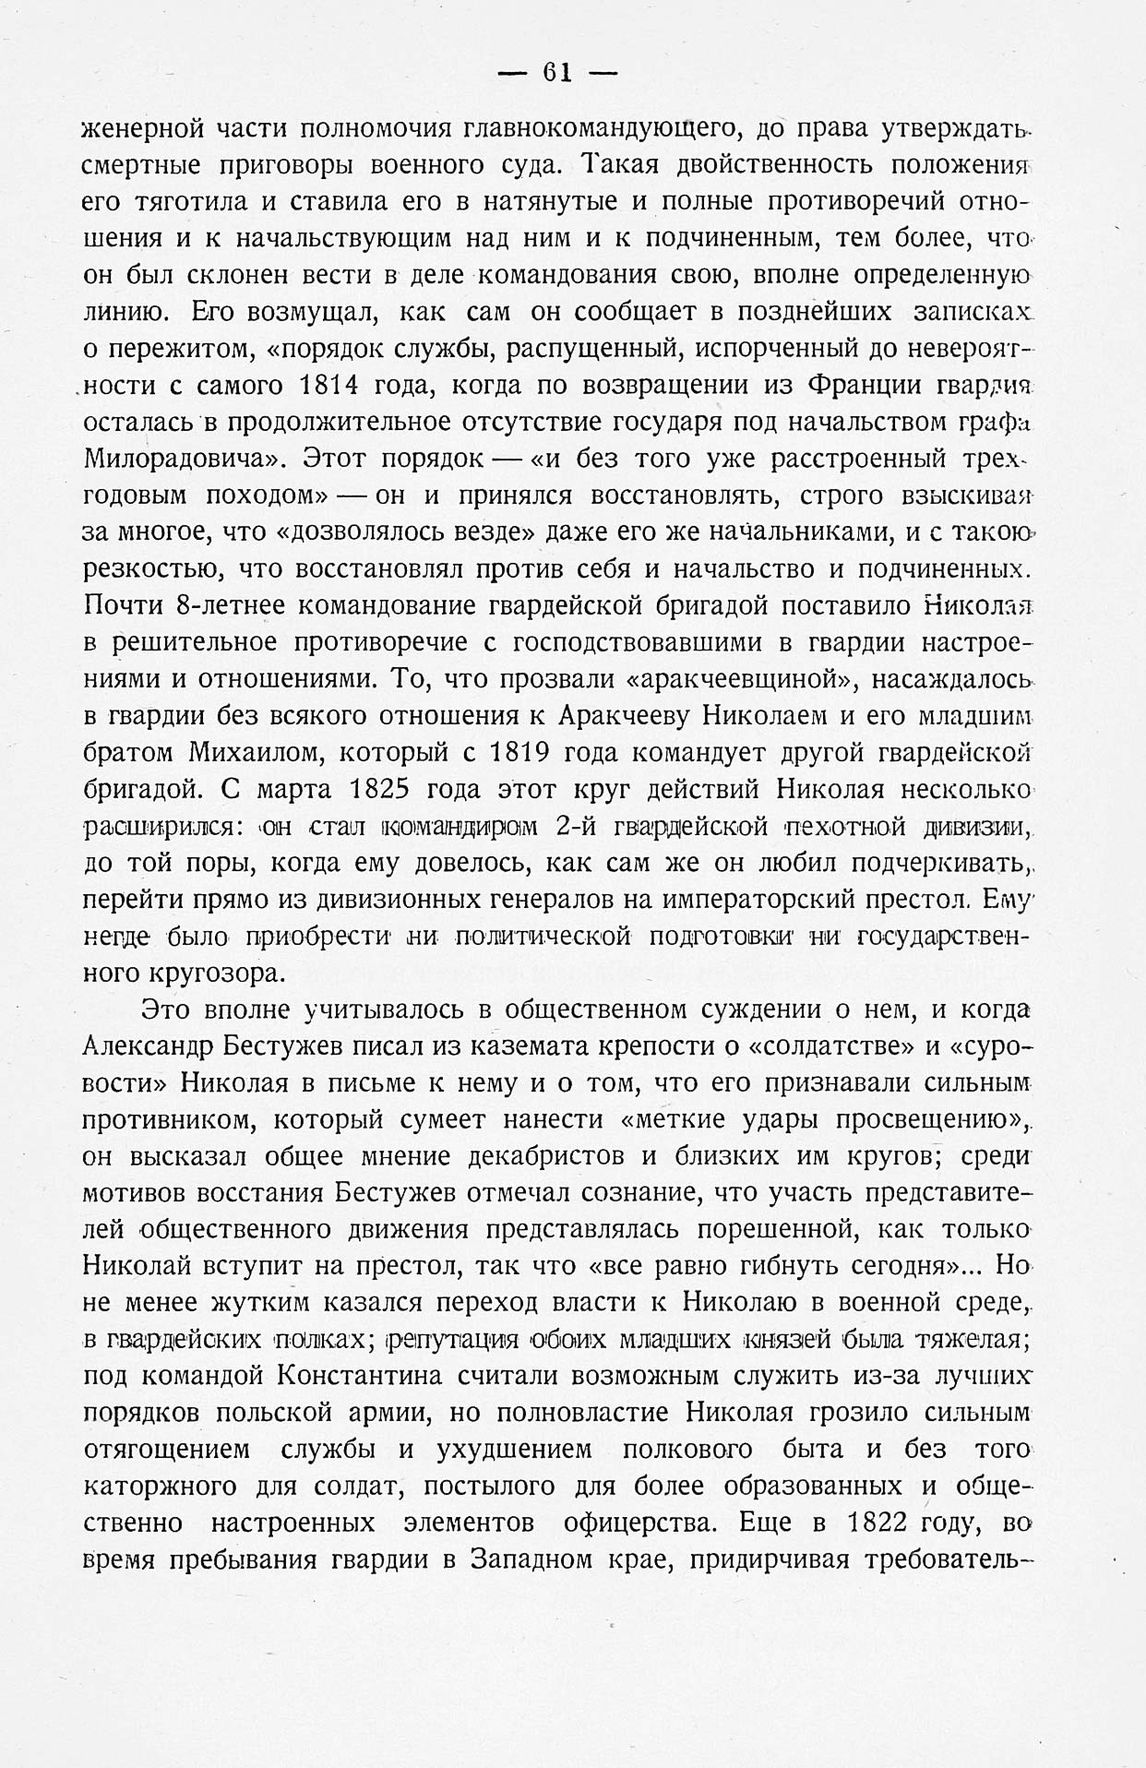 http://elib.shpl.ru/pages/565958/zooms/7